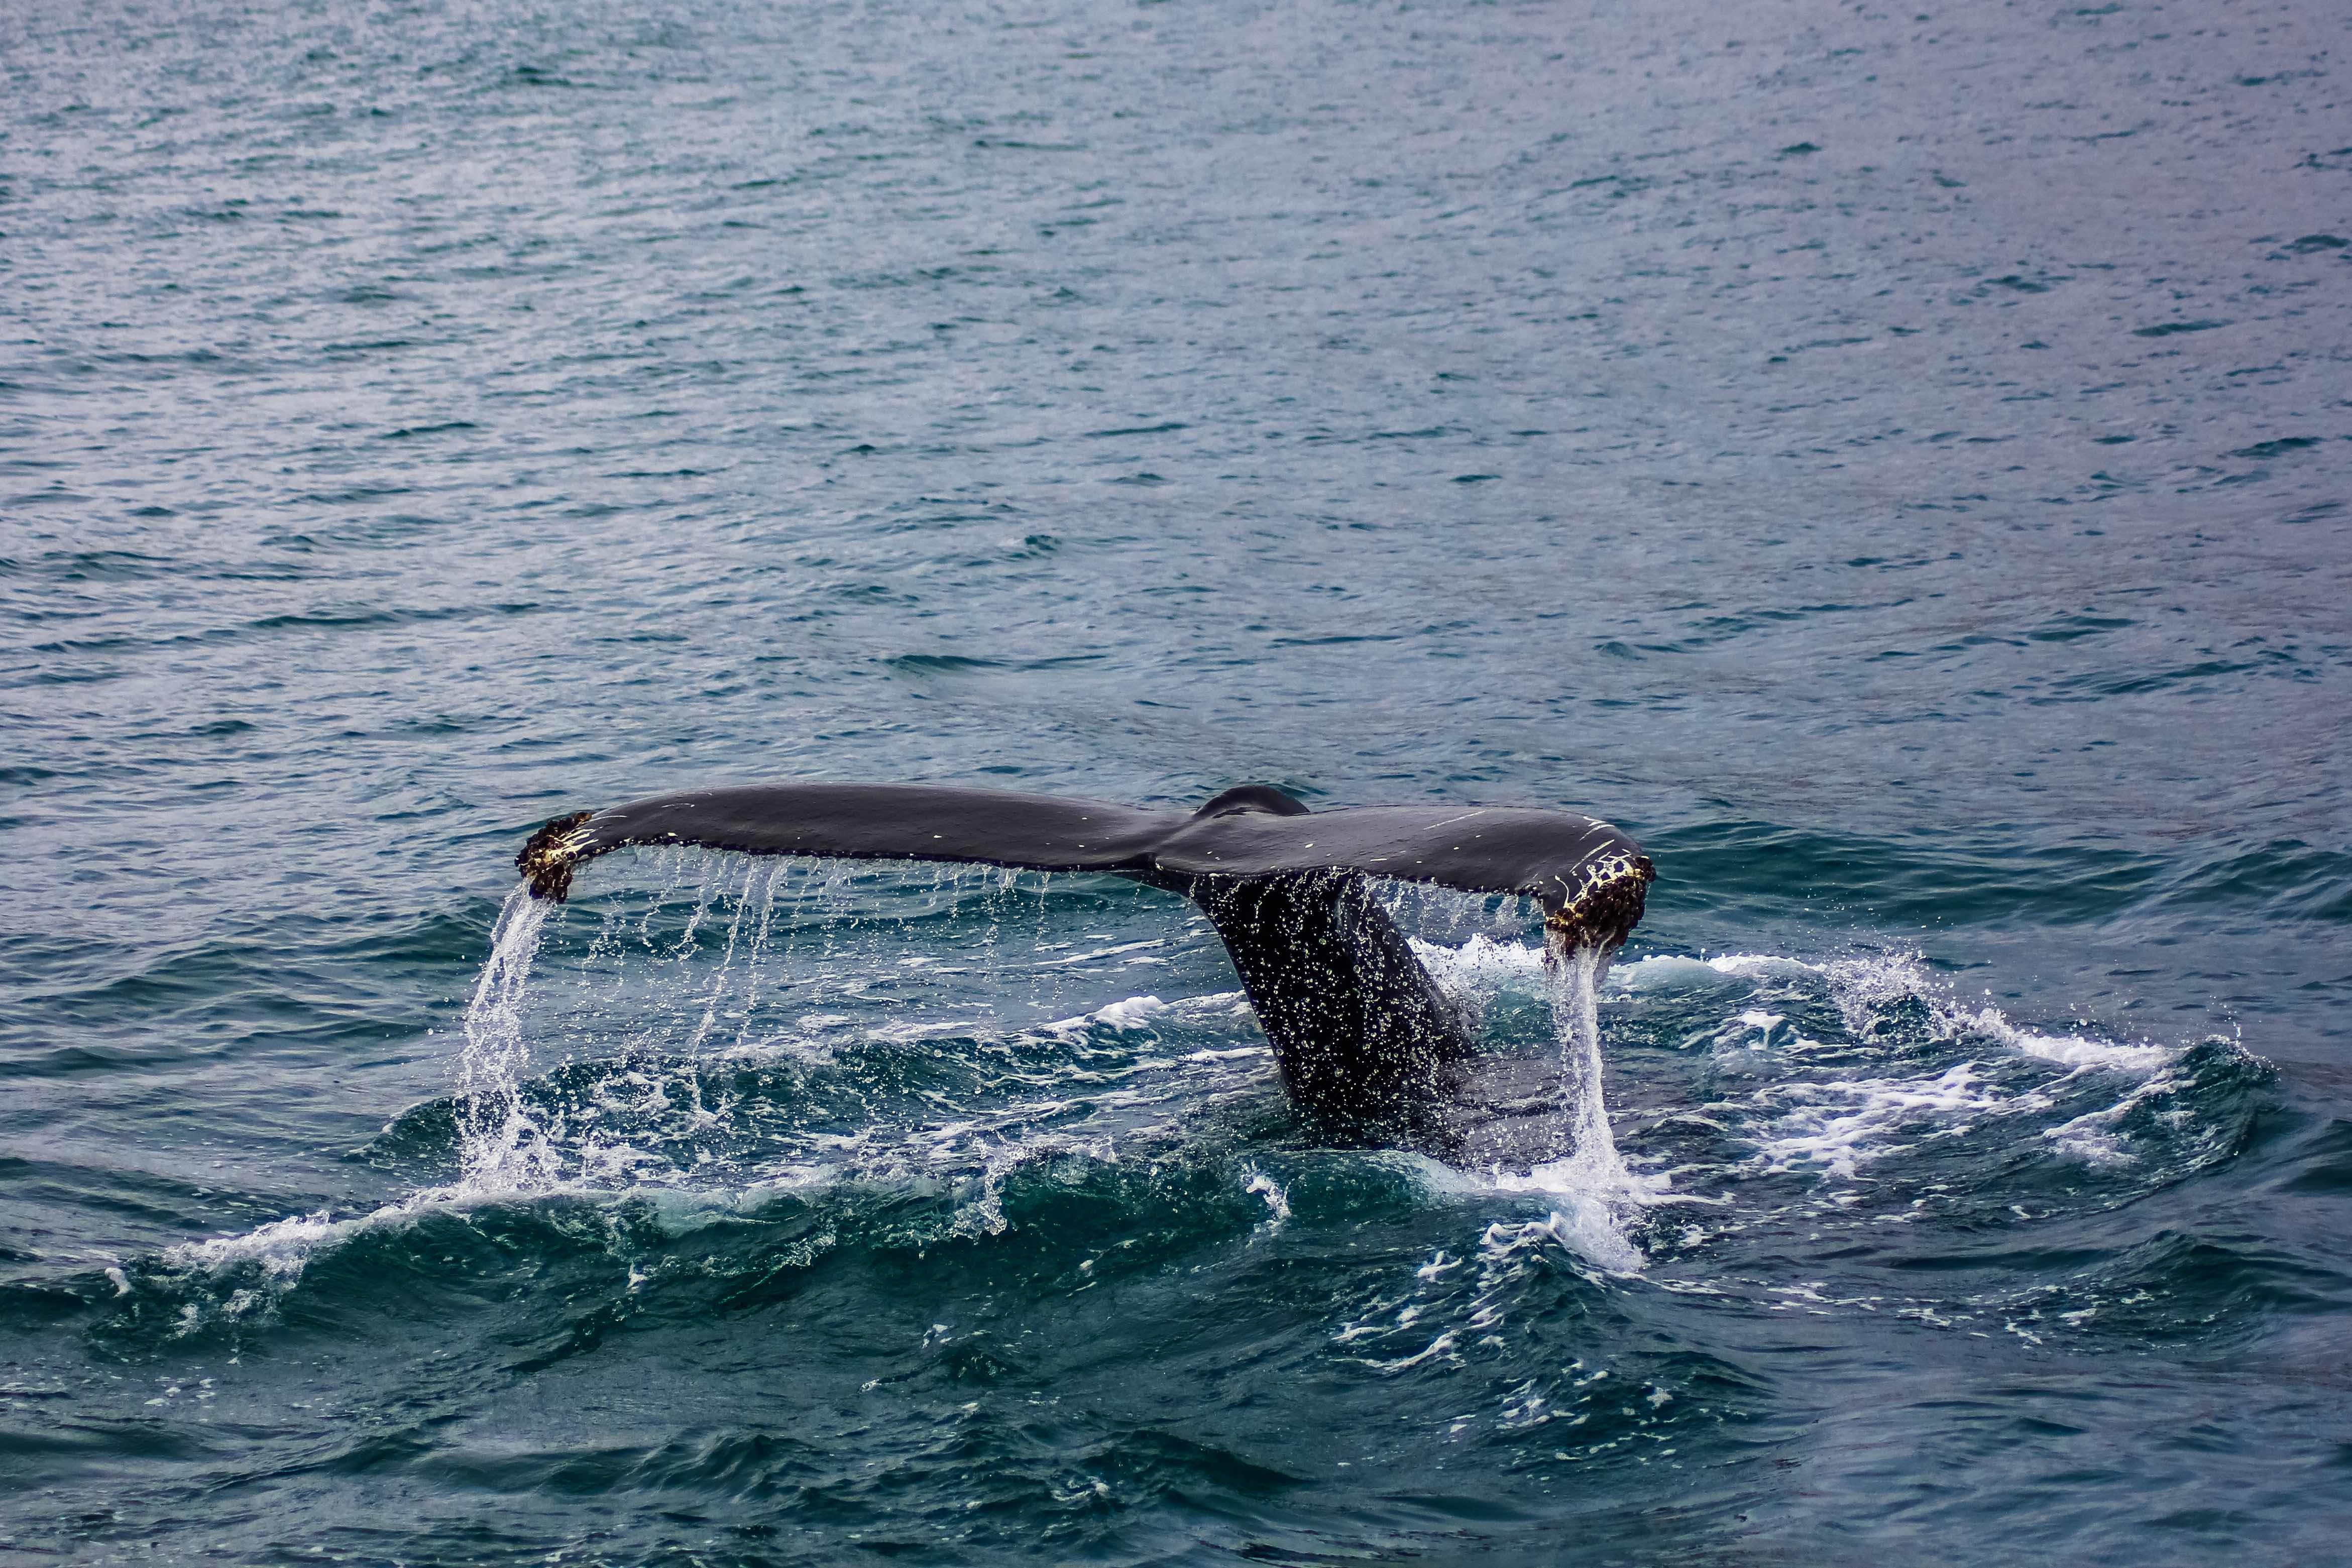 black tail of whale underwater